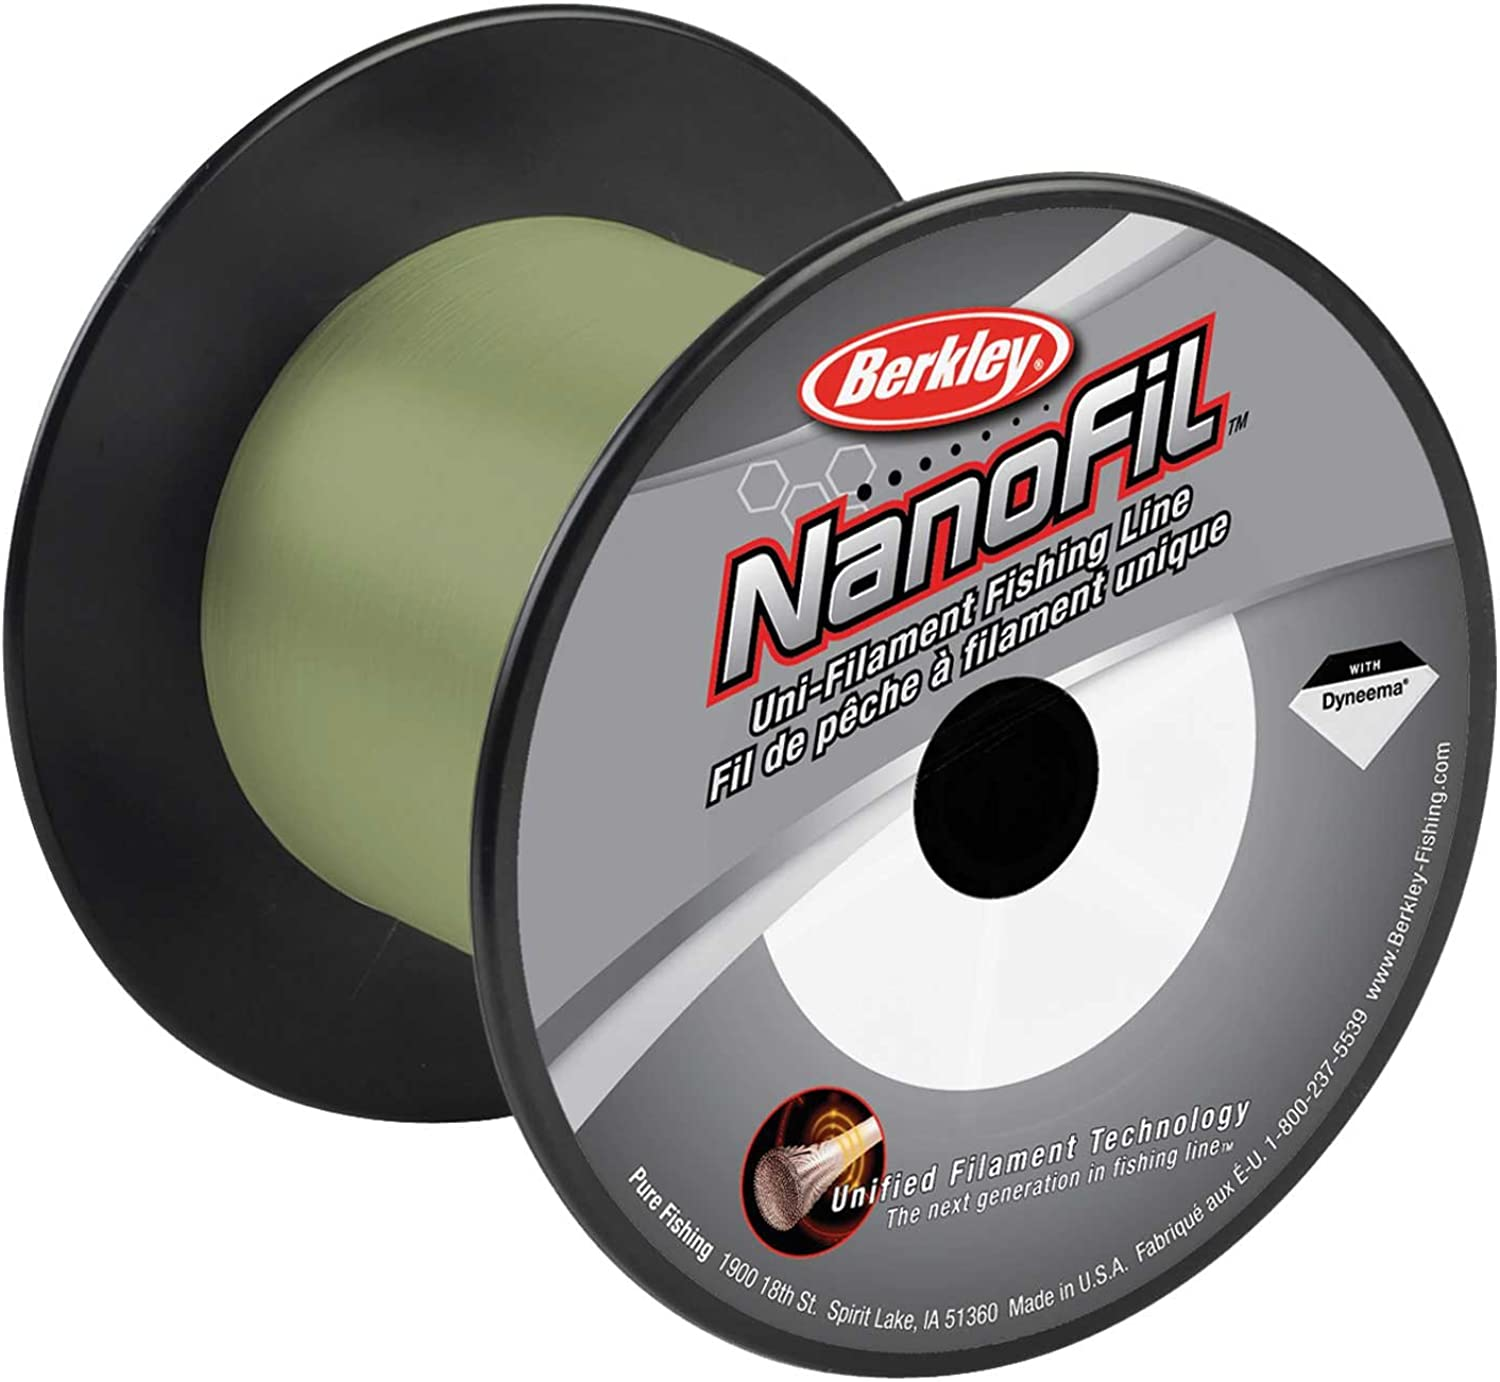 Berkley Nanofil UniFilament .007Inch Diameter Fishing Line, Low Vis Green